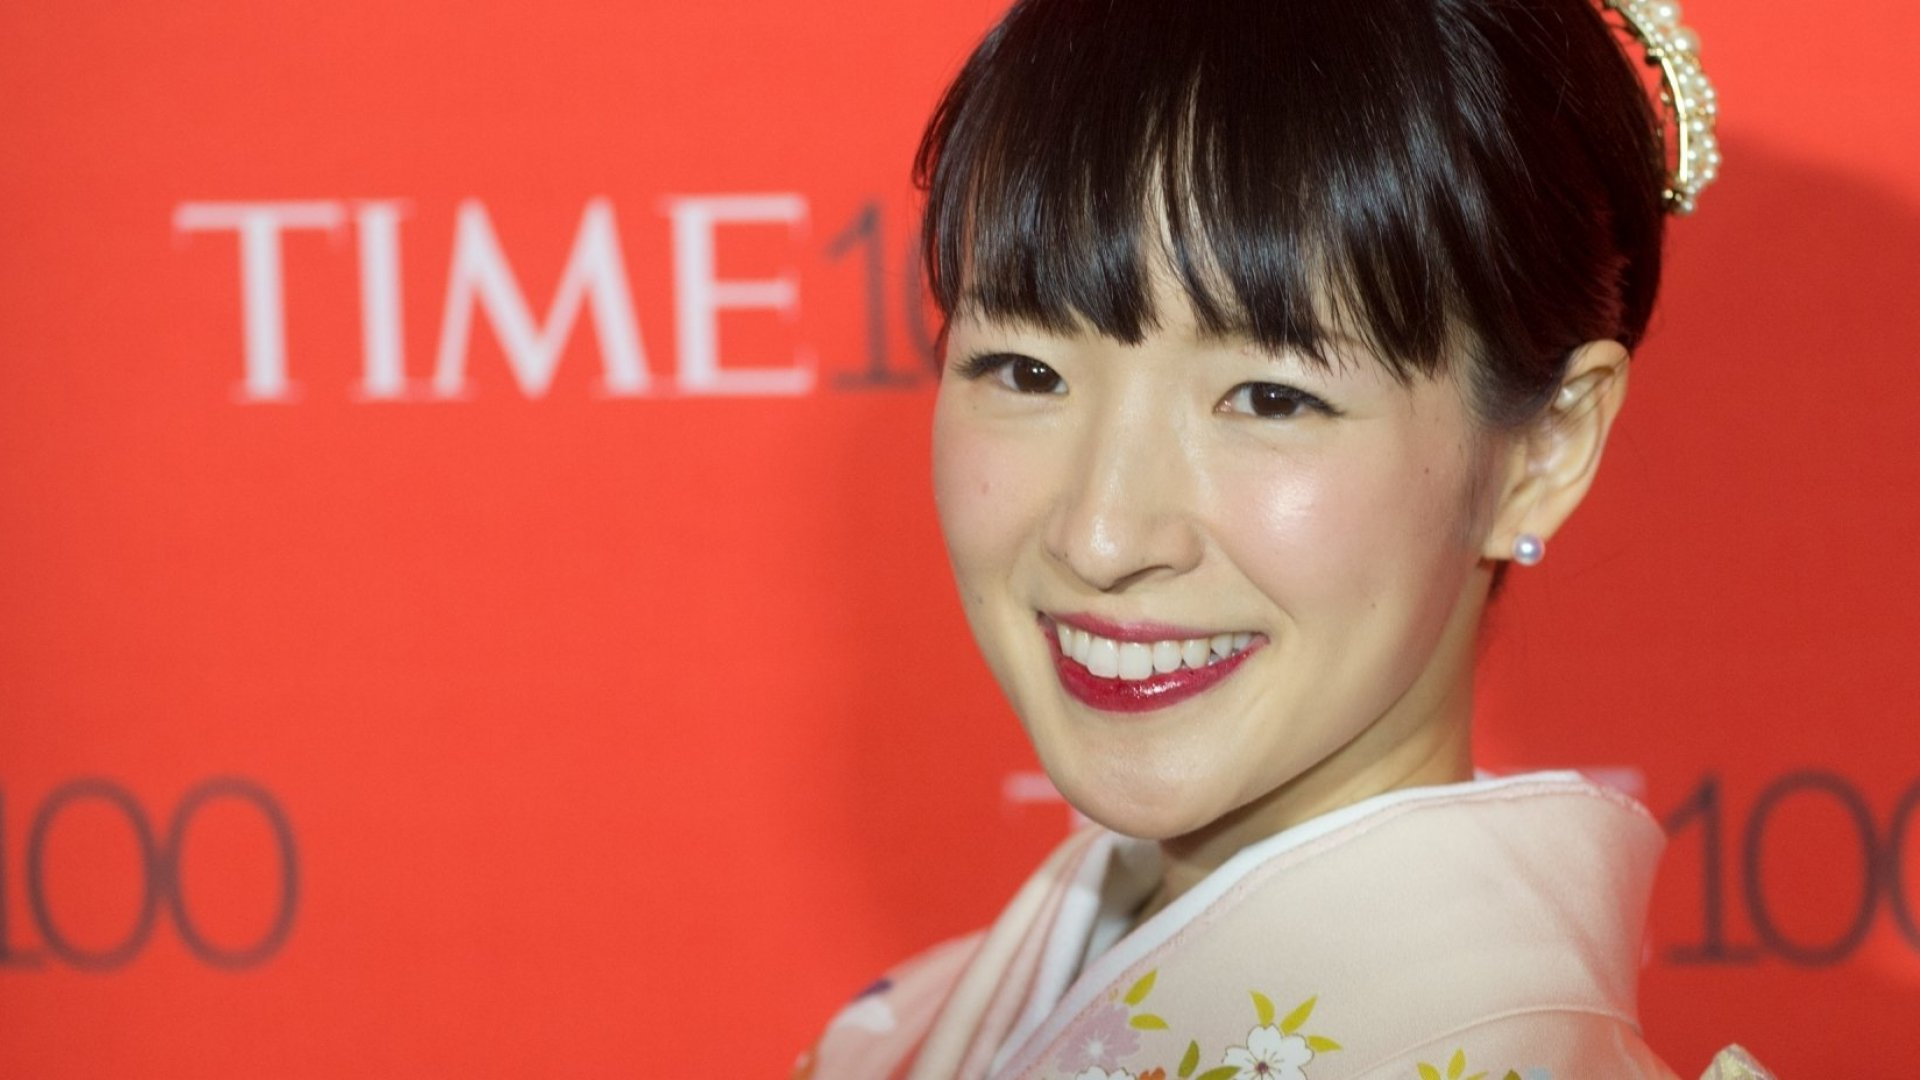 17 Marie Kondo Quotes That Will Help You Organize and Get Control of Your Life and Work